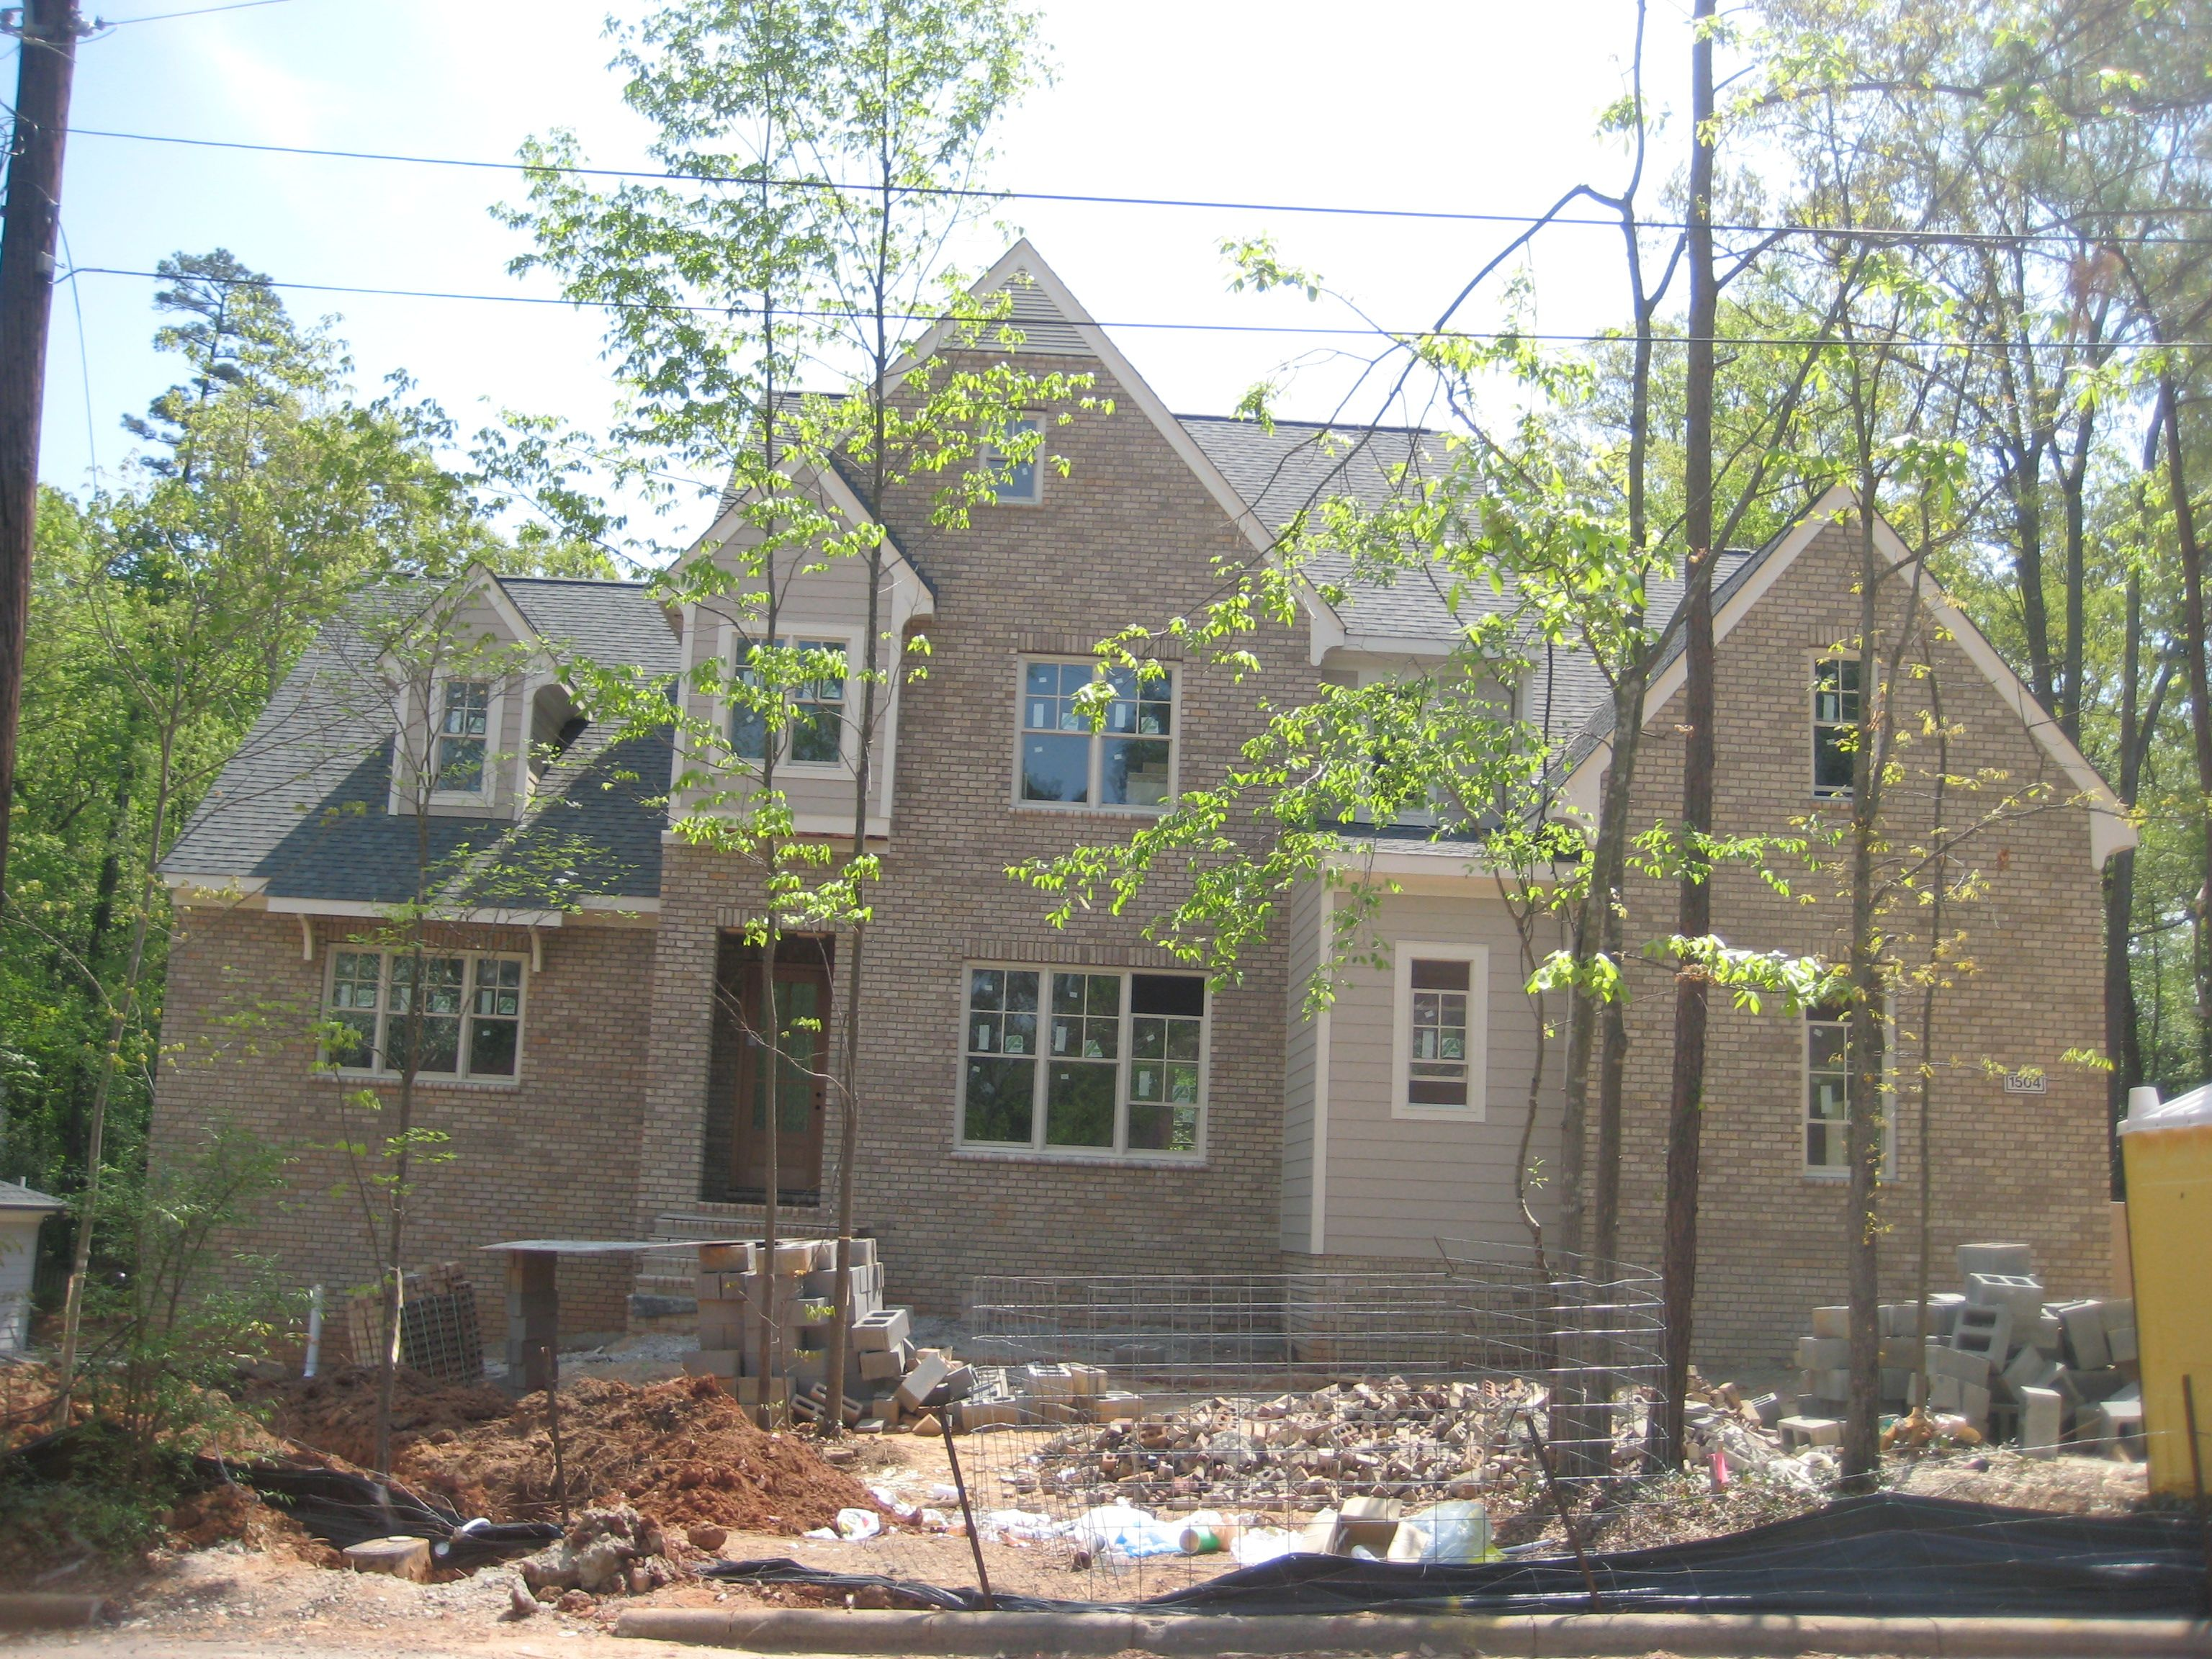 High Quality Lot 2 Frazier Home Design 1504 Brooks Avenue Raleigh, N.C.